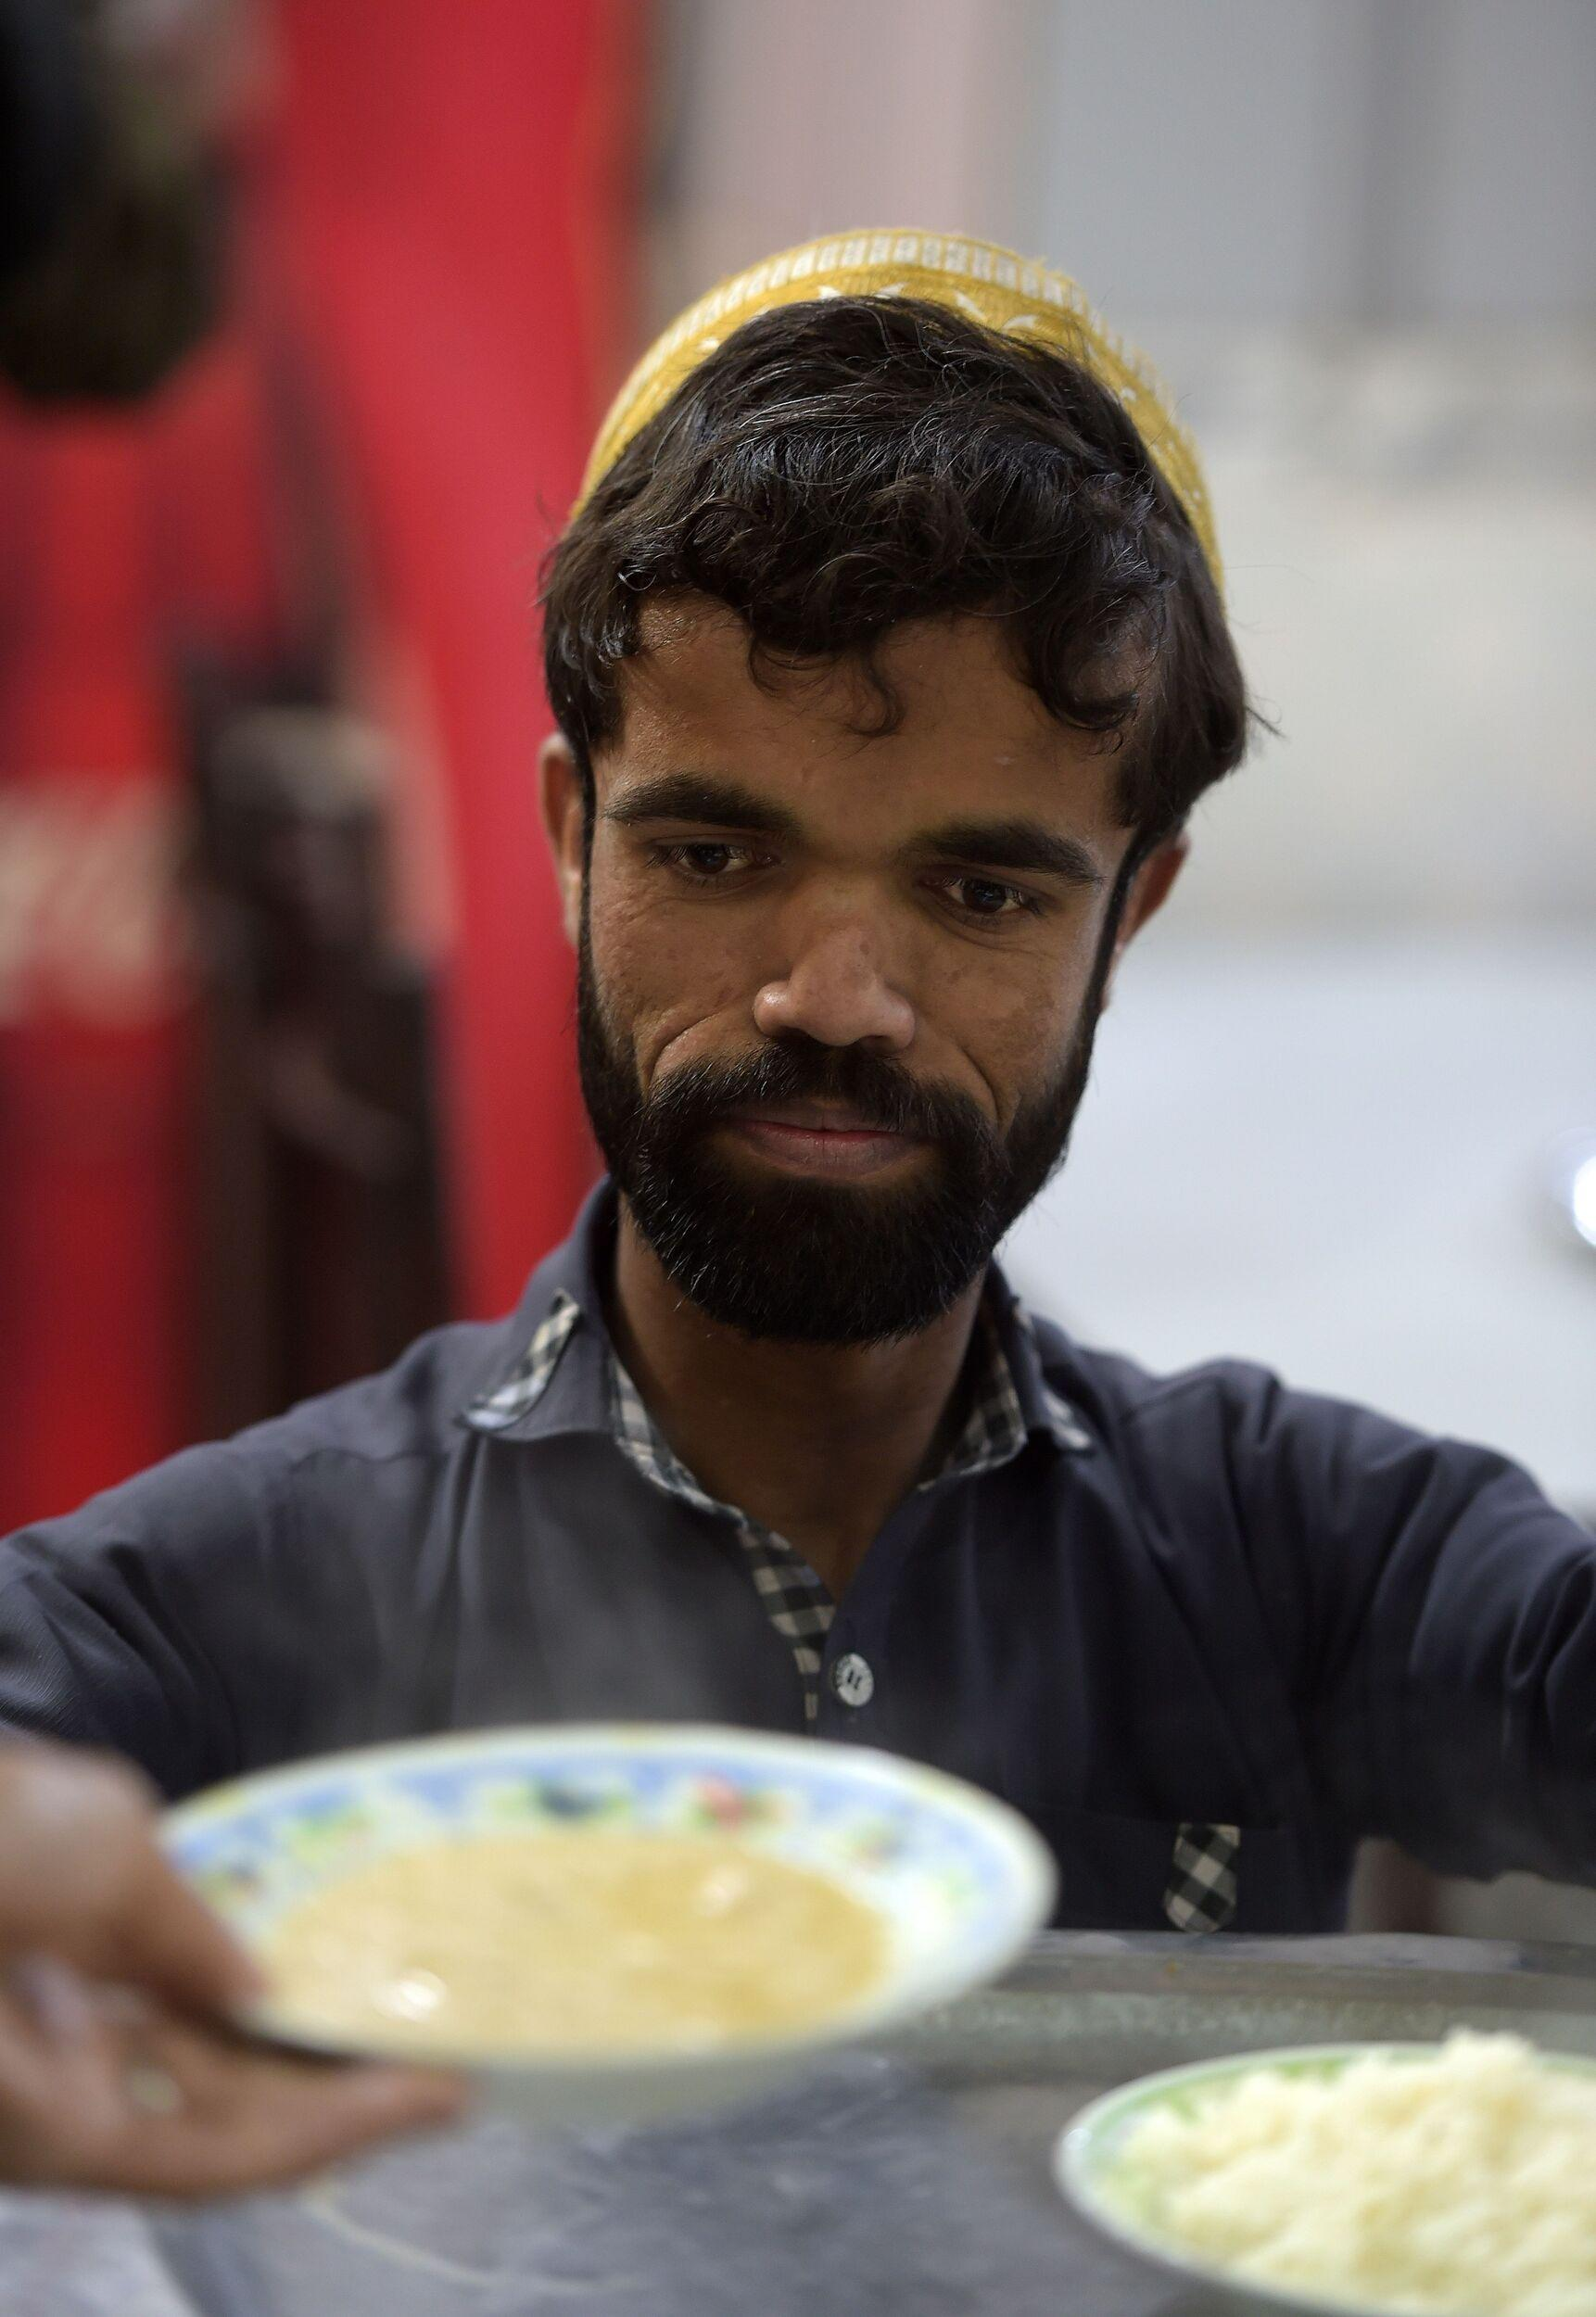 In this picture taken on February 22, 2019, Rozi Khan, a 25-year-old Pakistani waiter who resembles US actor Peter Dinklage, prepares to serve food to customers at Dilbar Hotel in Rawalpindi. - Rozi Khan had never heard of the Game of Thrones -- or its hugely popular character Tyrion Lannister -- until his striking resemblance to the dwarf anti-hero got heads turning at home. (Photo by AAMIR QURESHI / AFP) / To go with PAKISTAN-LIFESTYLE-TELEVISION-ENTERTAINMENT        (Photo credit should read AAMIR QURESHI/AFP/Getty Images)